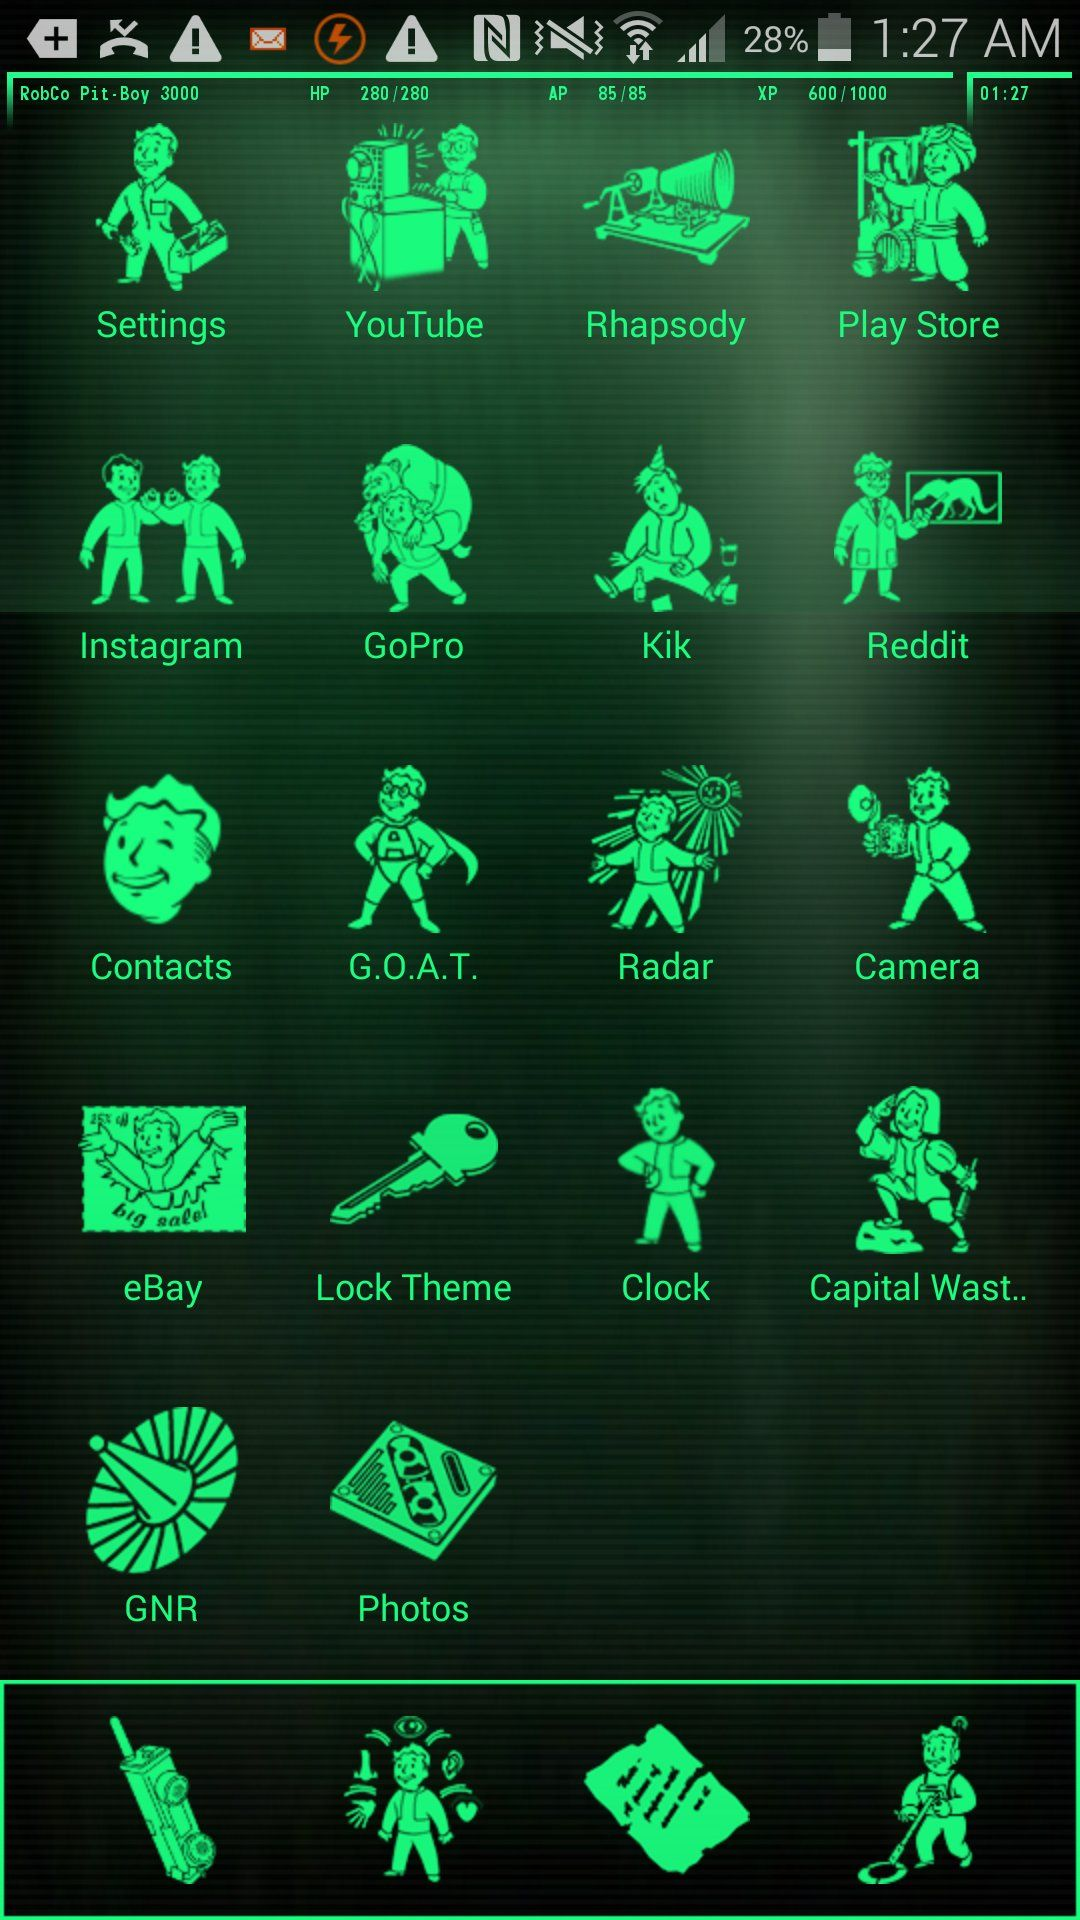 Google themes live - Pip Boy 3000 Live Wallpaper Android Apps On Google Play